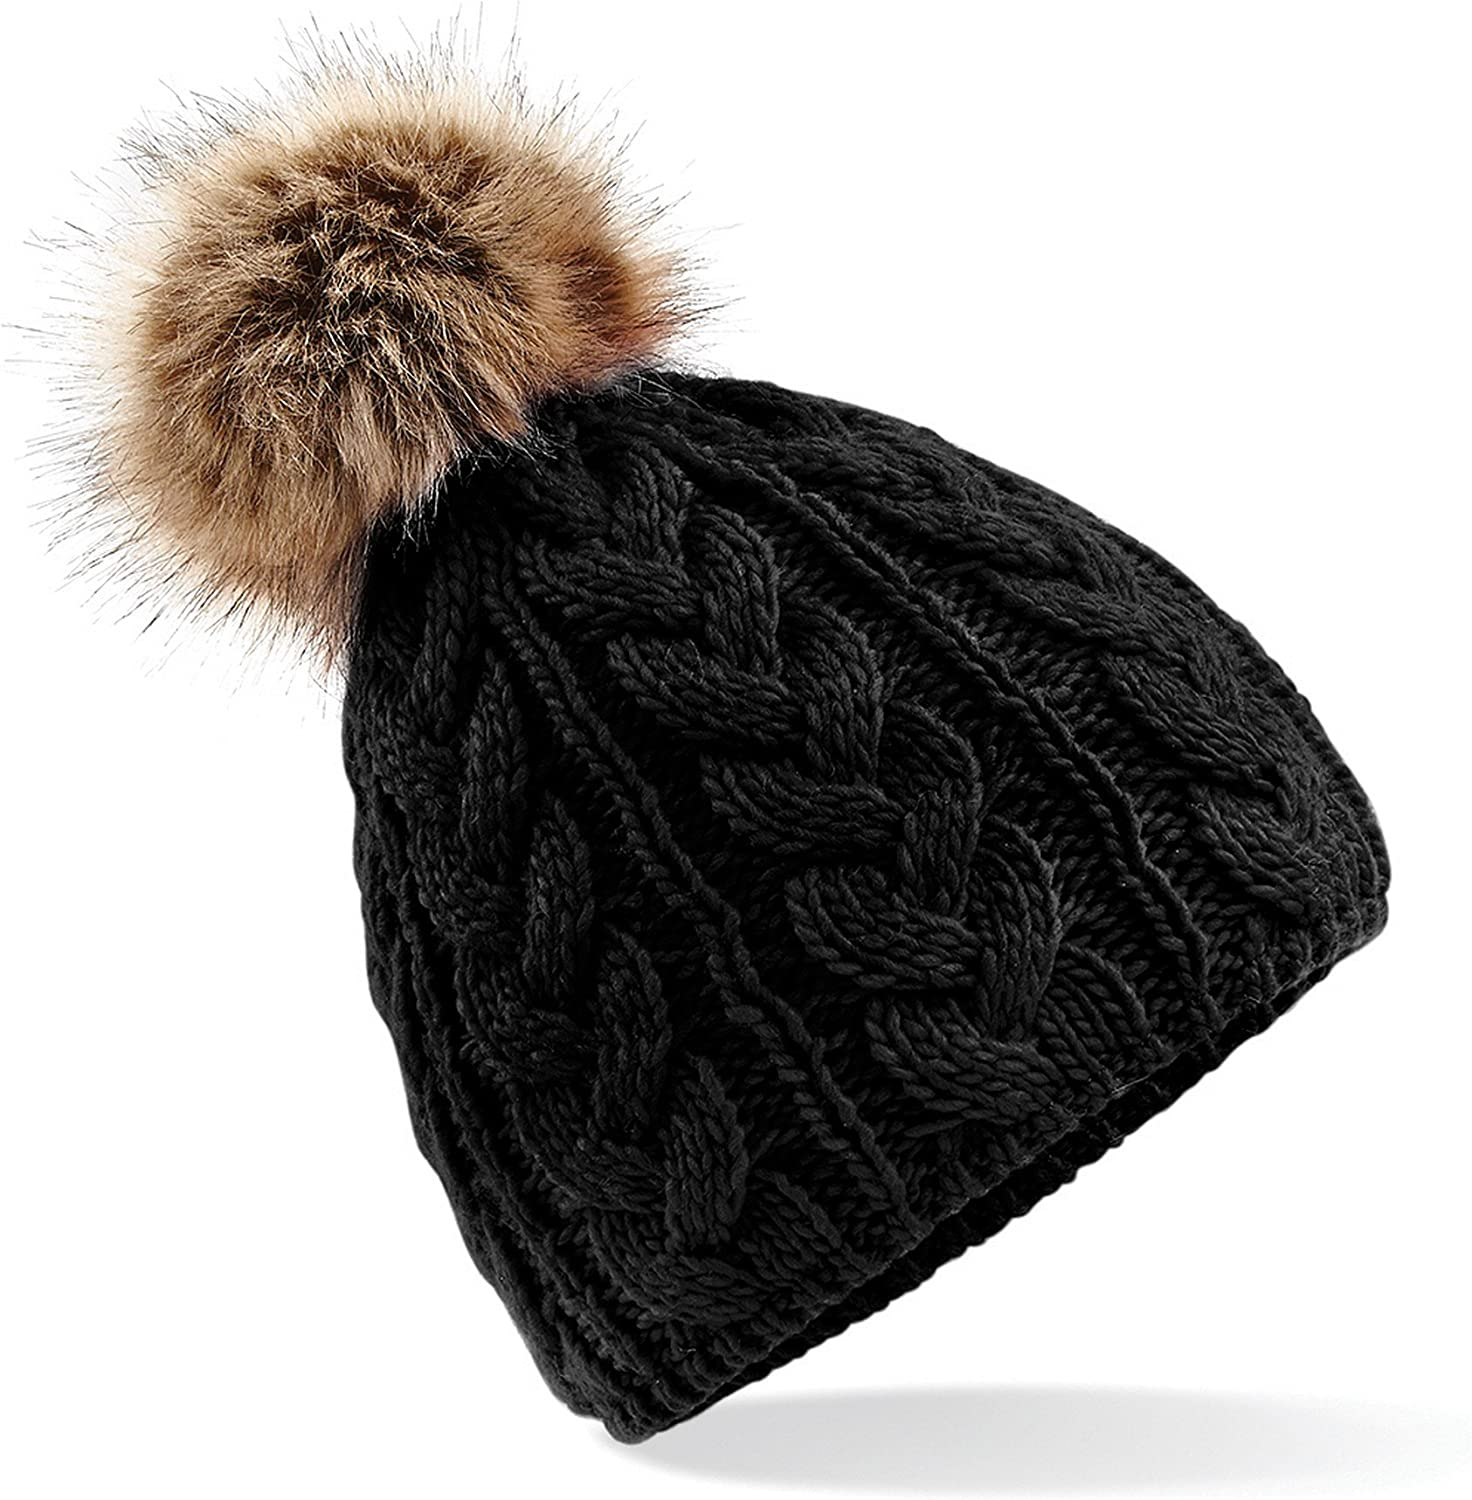 Beechfield Unisex Pom Cable Manufacturer OFFicial Complete Free Shipping shop Beanie